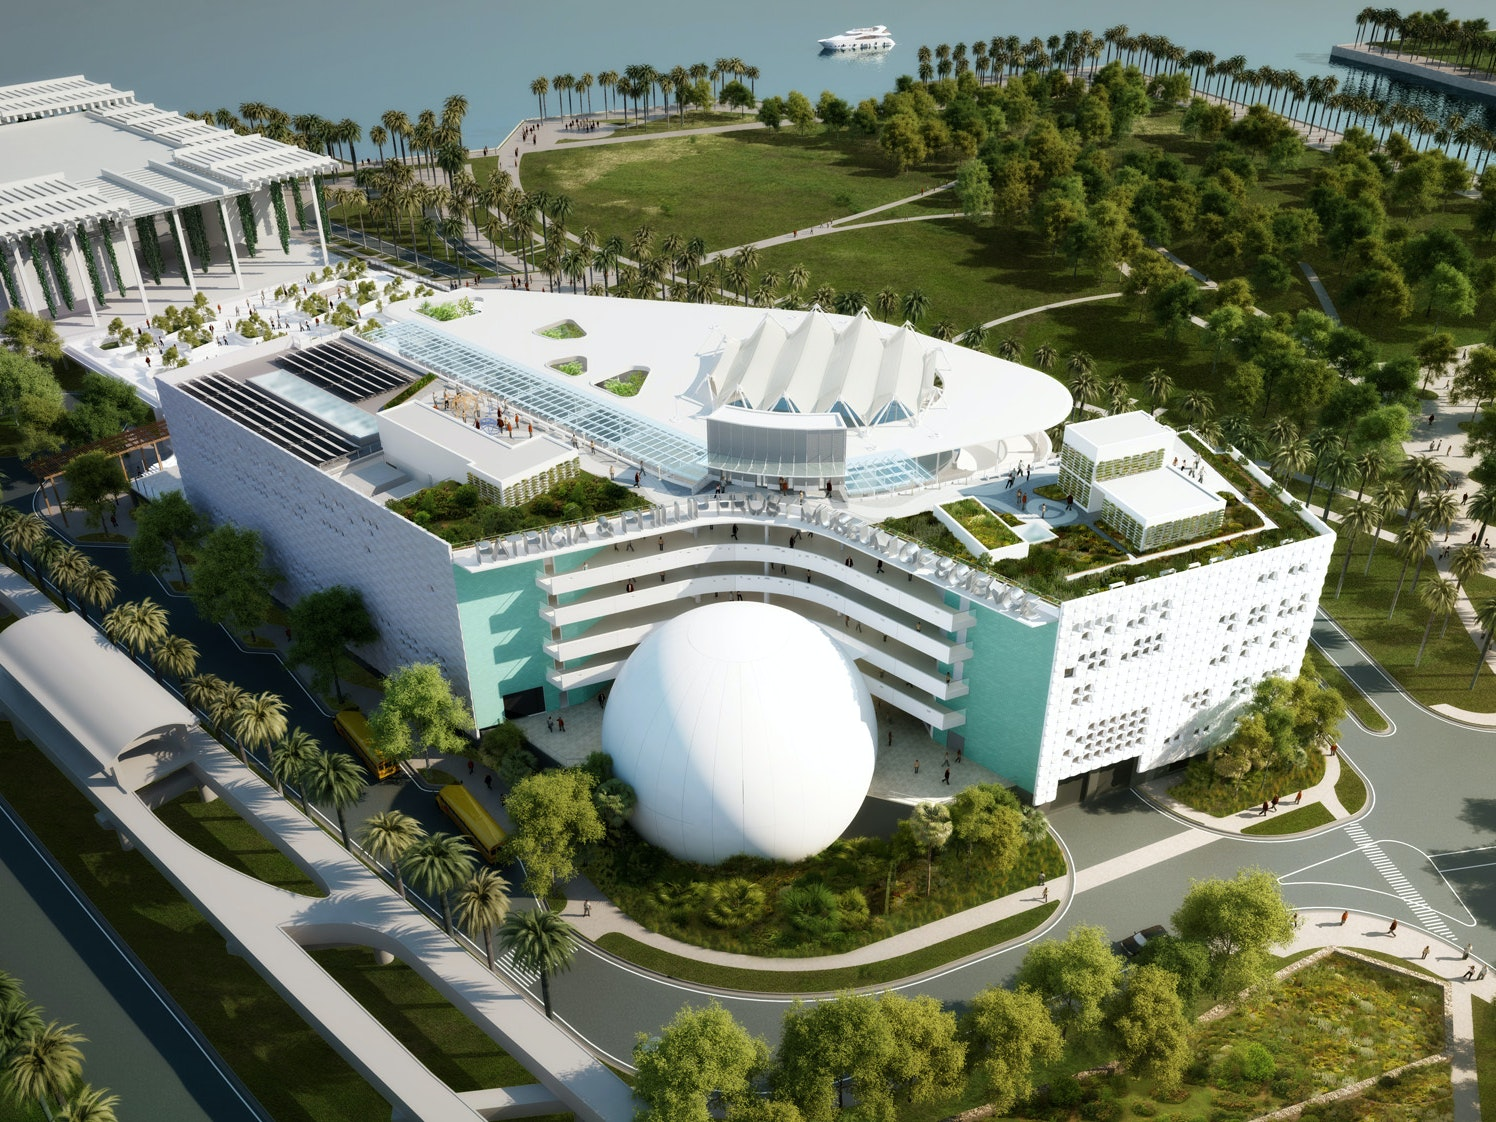 Miami's Doomed Frost Museum of Science Is a Monument to Ignoring Science